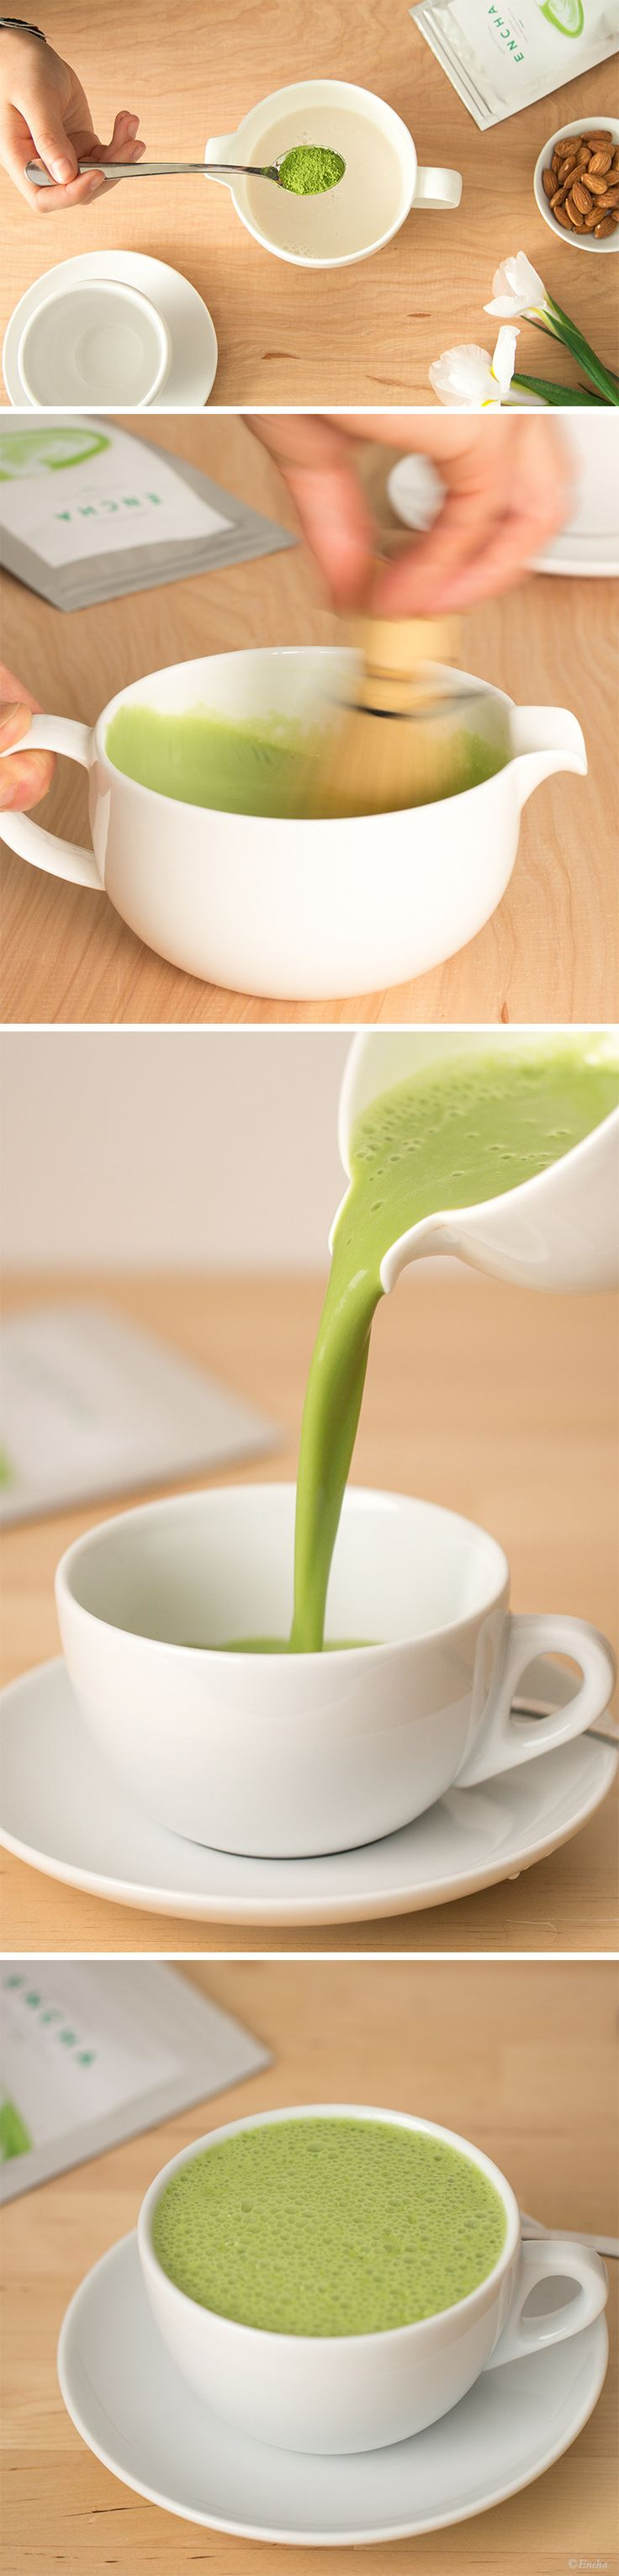 Simple Matcha Latte by encha: Use the milk of your choice and sweeten to taste. #Beverage #Matcha_Latte #Healthy